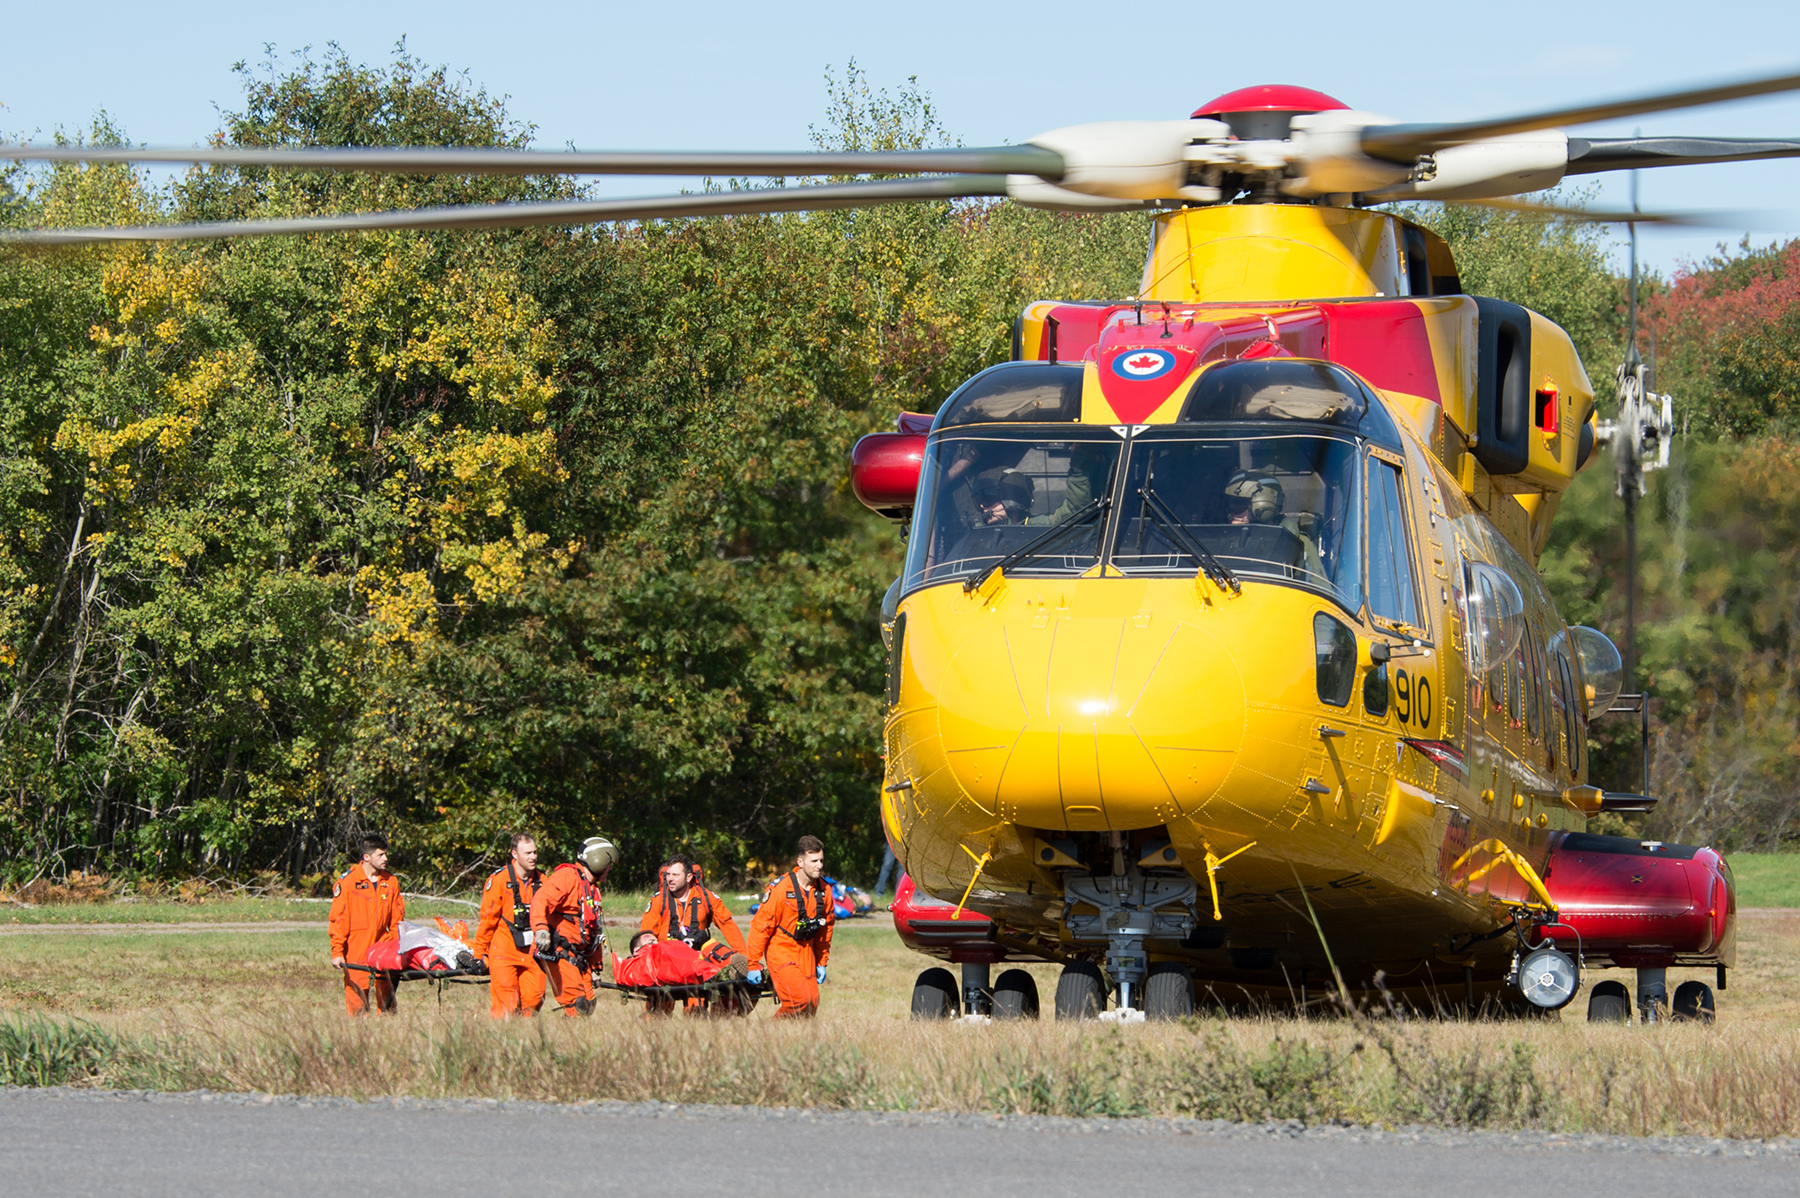 Search and rescue technicians load simulated casualties onto a CH-149 Cormorant helicopter at a simulated crash site at 14 Wing Greenwood during 413 Transport and Rescue Squadron's search and rescue exercise on October 5, 2018. PHOTO: Corporal Karen Neate, GD10-2018-0688-171